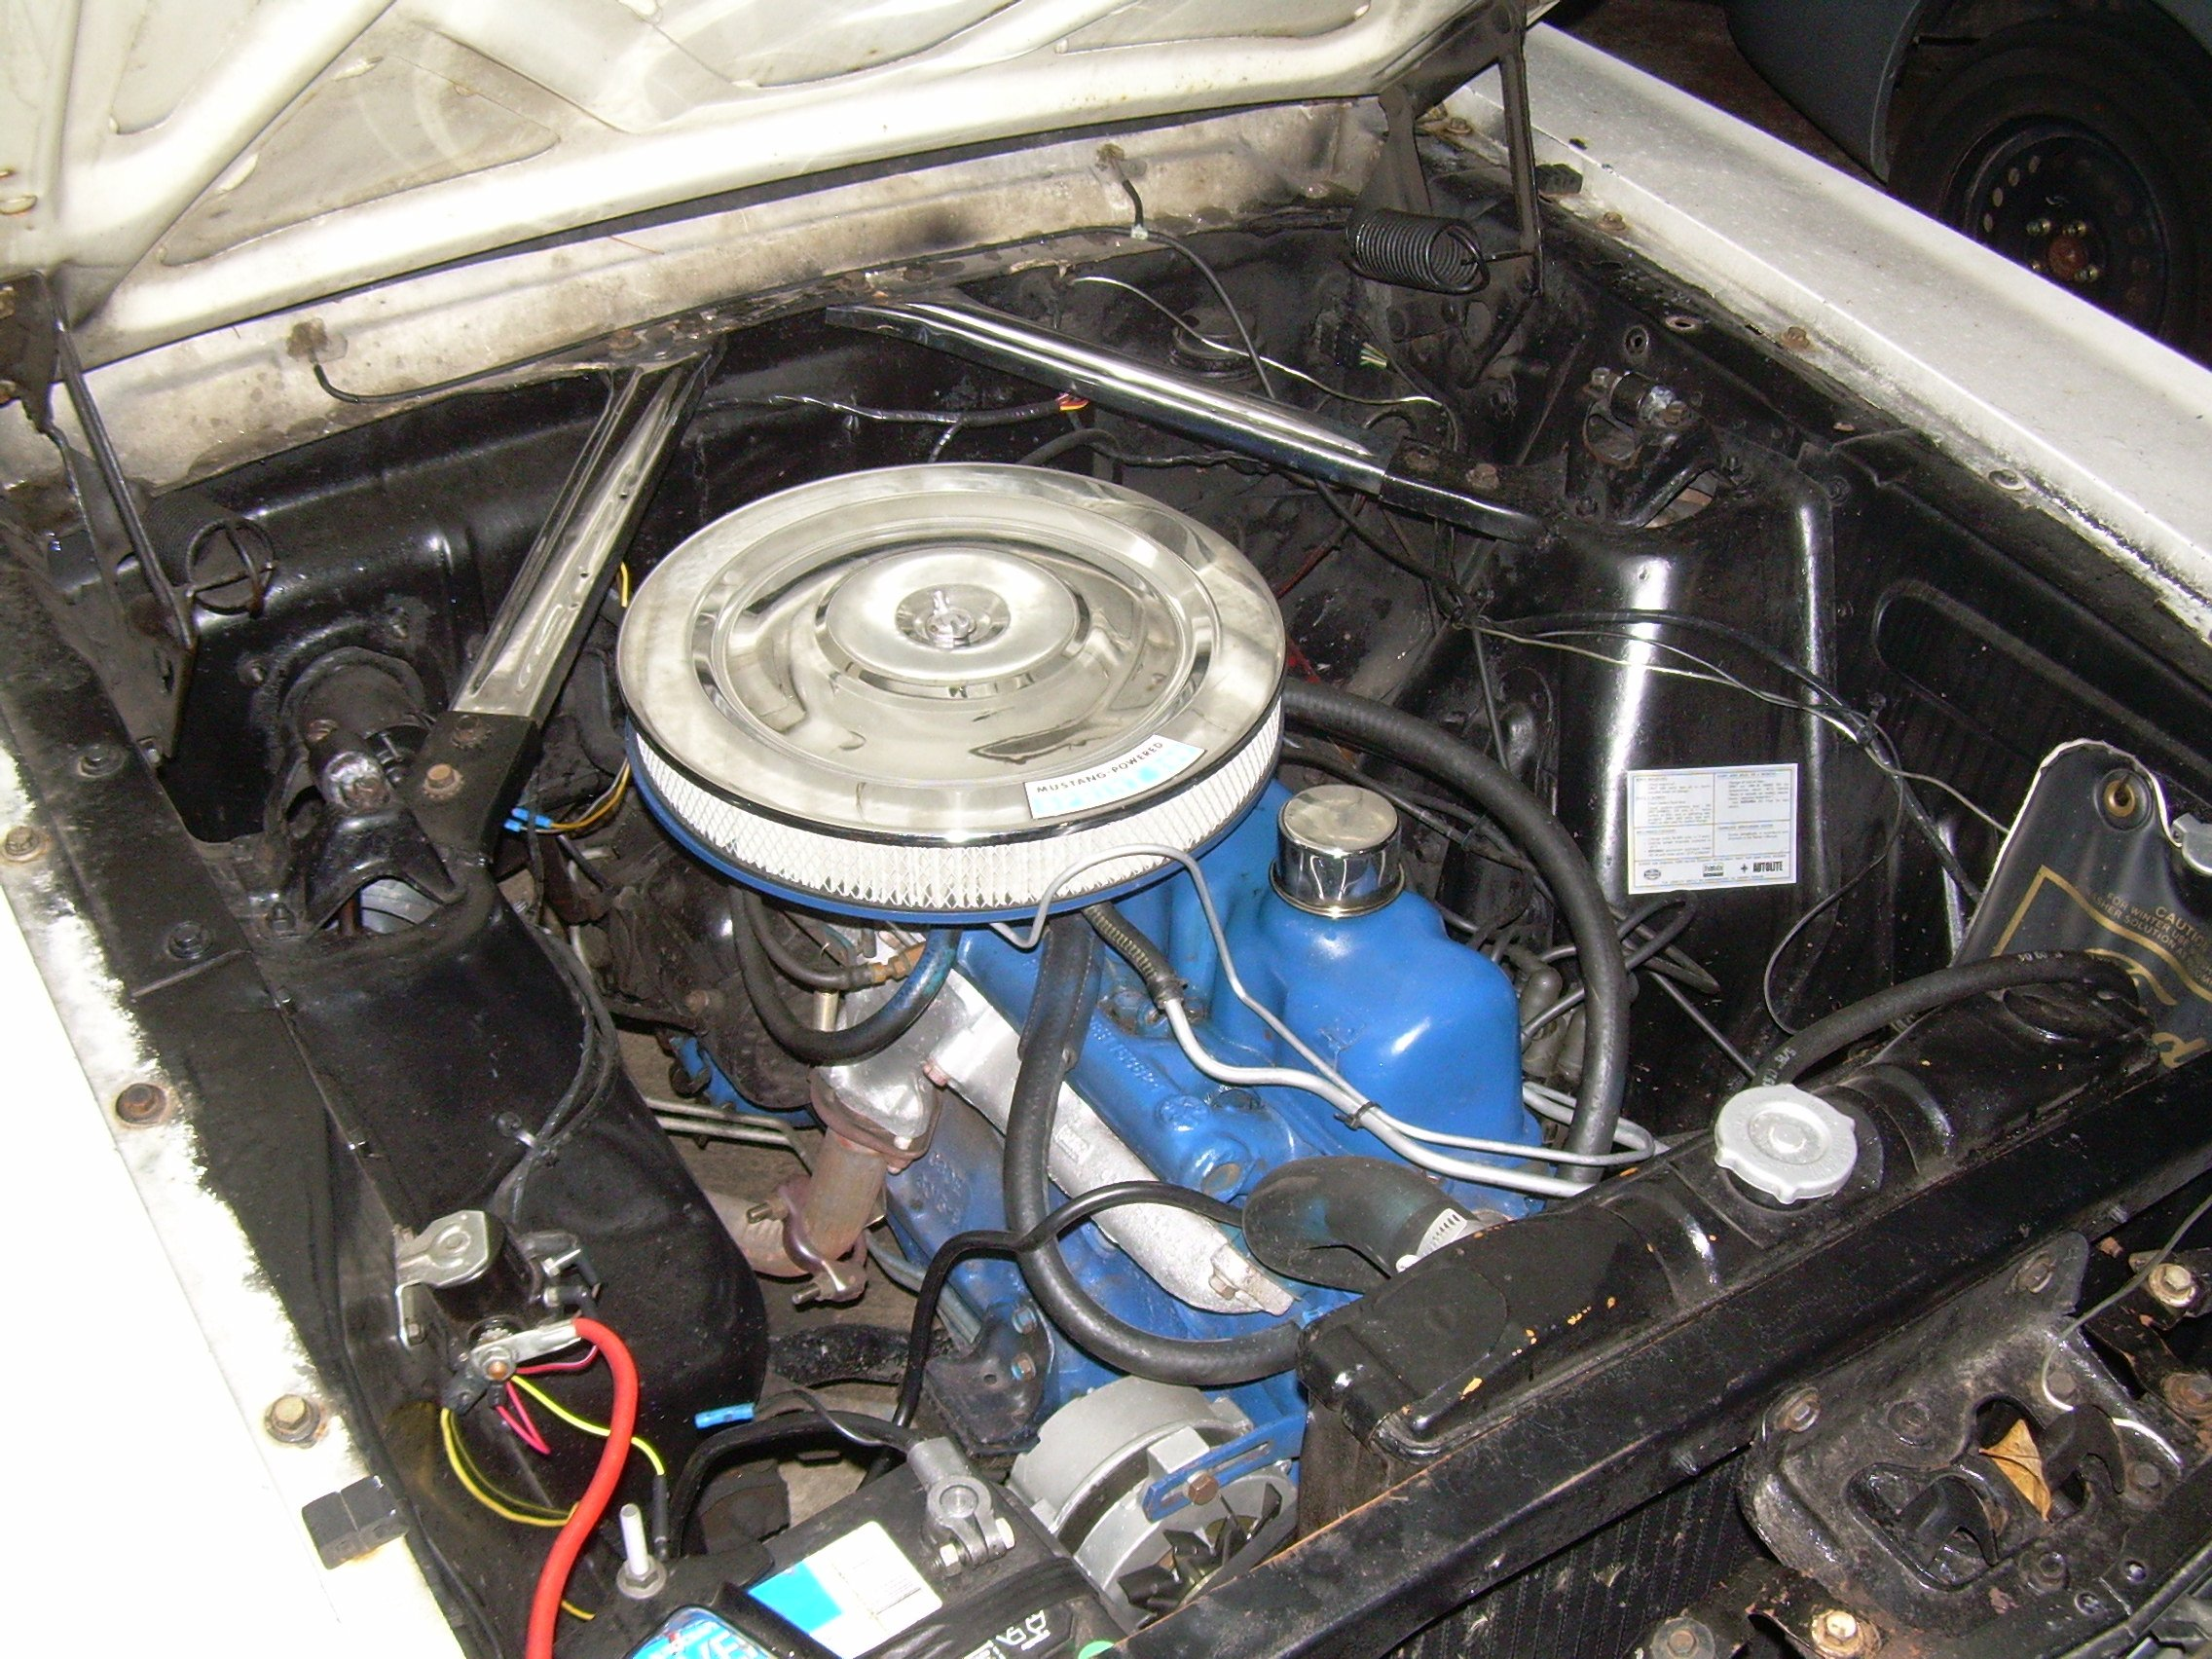 D Mustang Sprint Exhaust Manifold Question Engine on Ford Engine Block Numbers Location